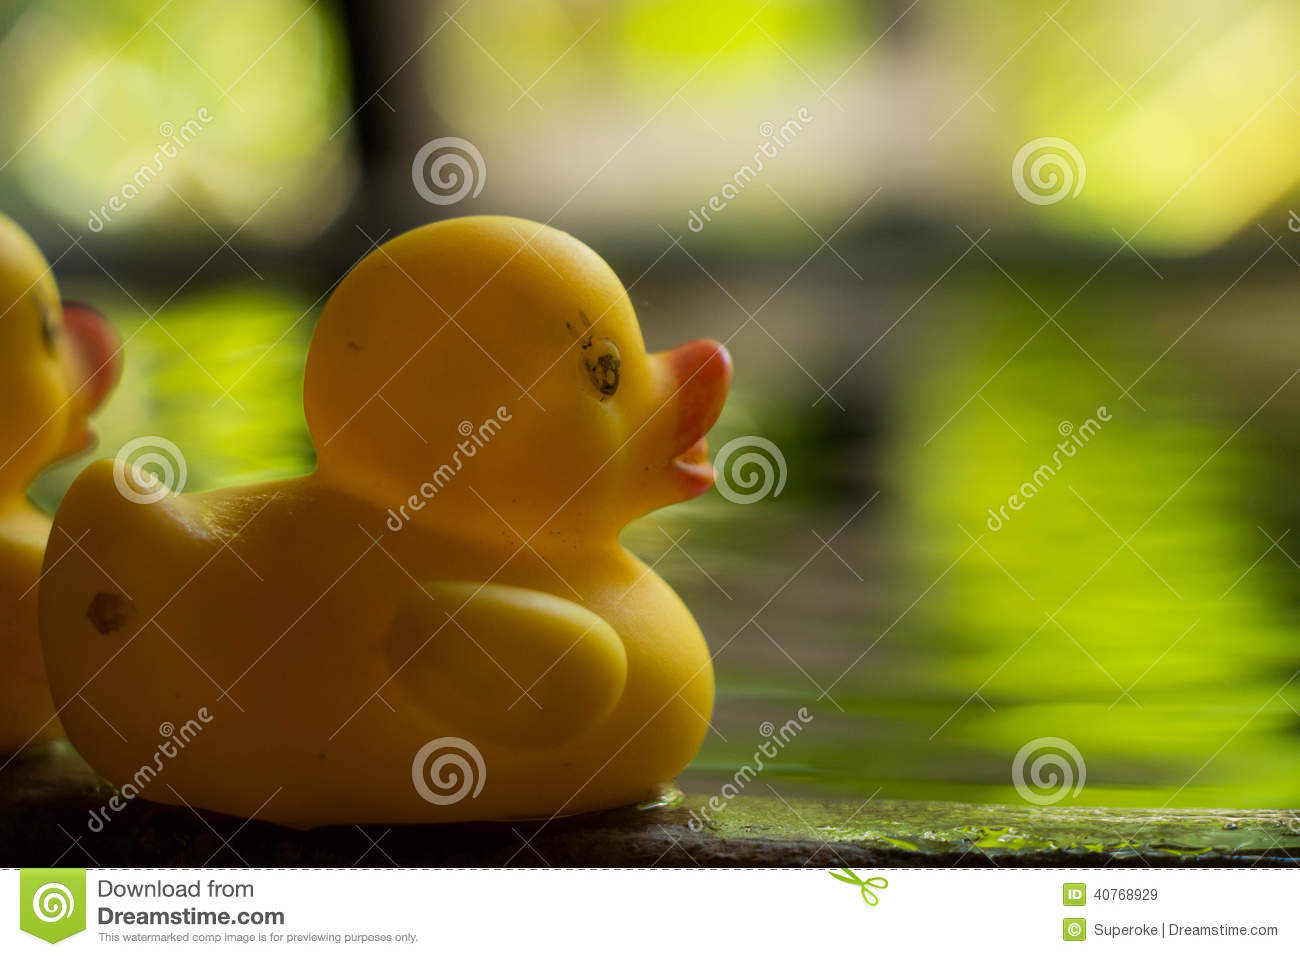 Duck toy on water stock image. Image of garden, bath - 40768929